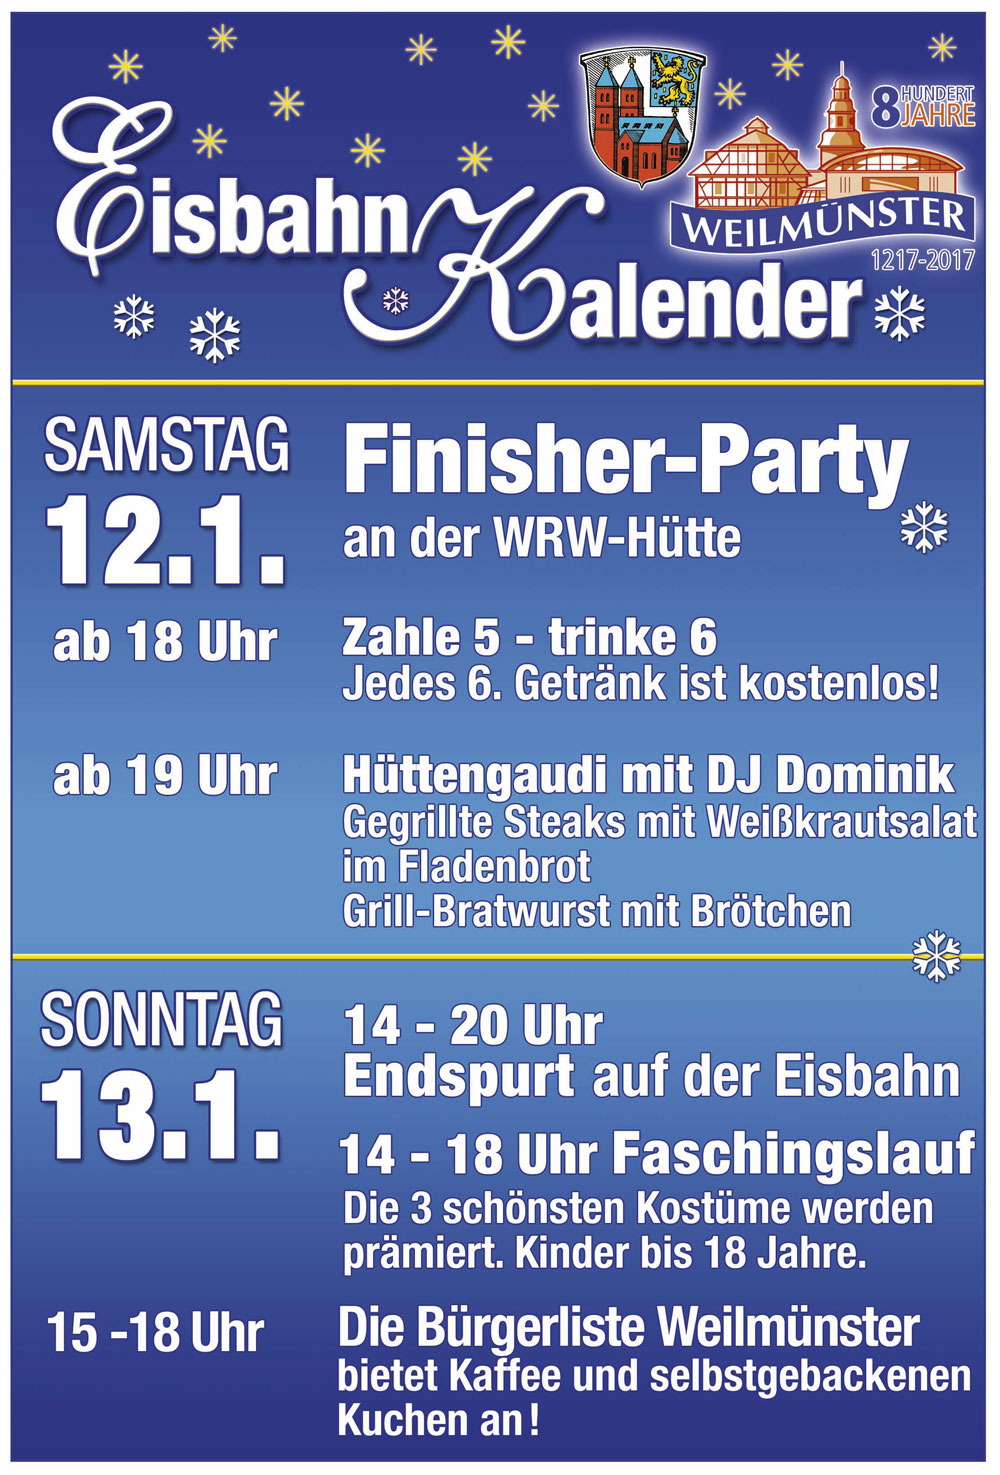 WN 2KW Eisbahnkalender Finish